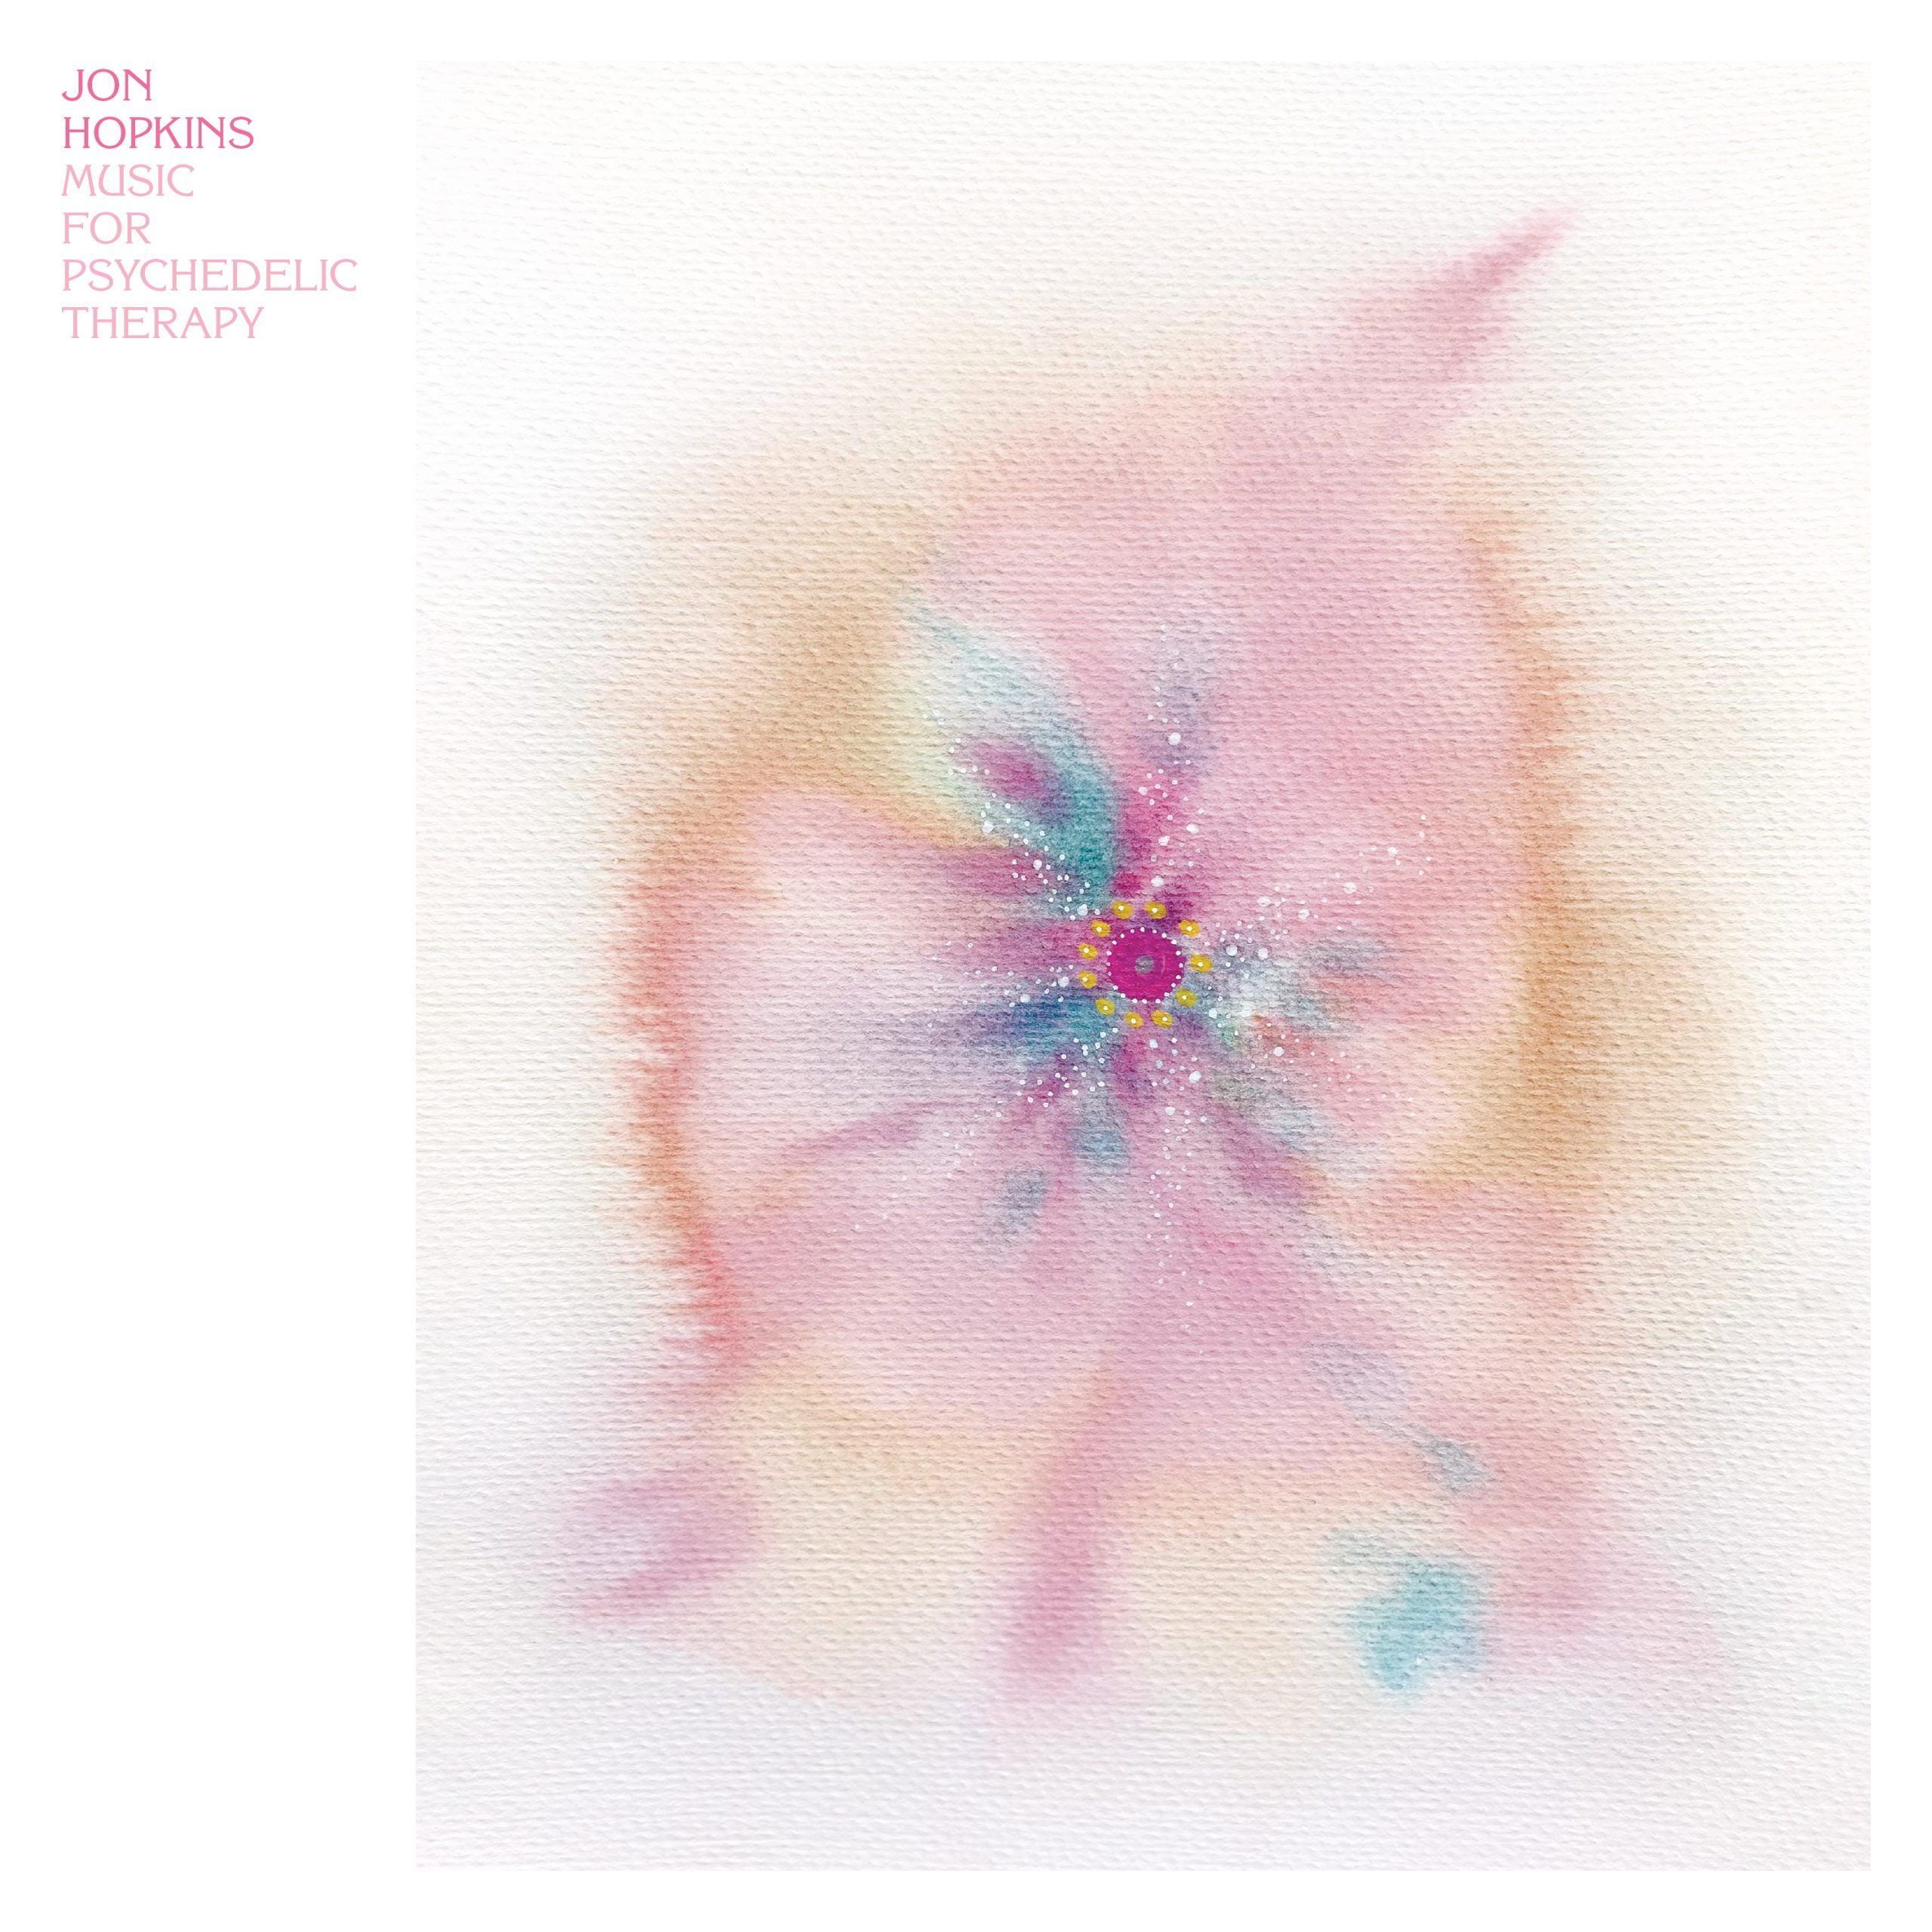 """Jon Hopkins – """"Love Flows Over Us In Prismatic Waves"""" & """"Deep In The Glowing Heart"""""""